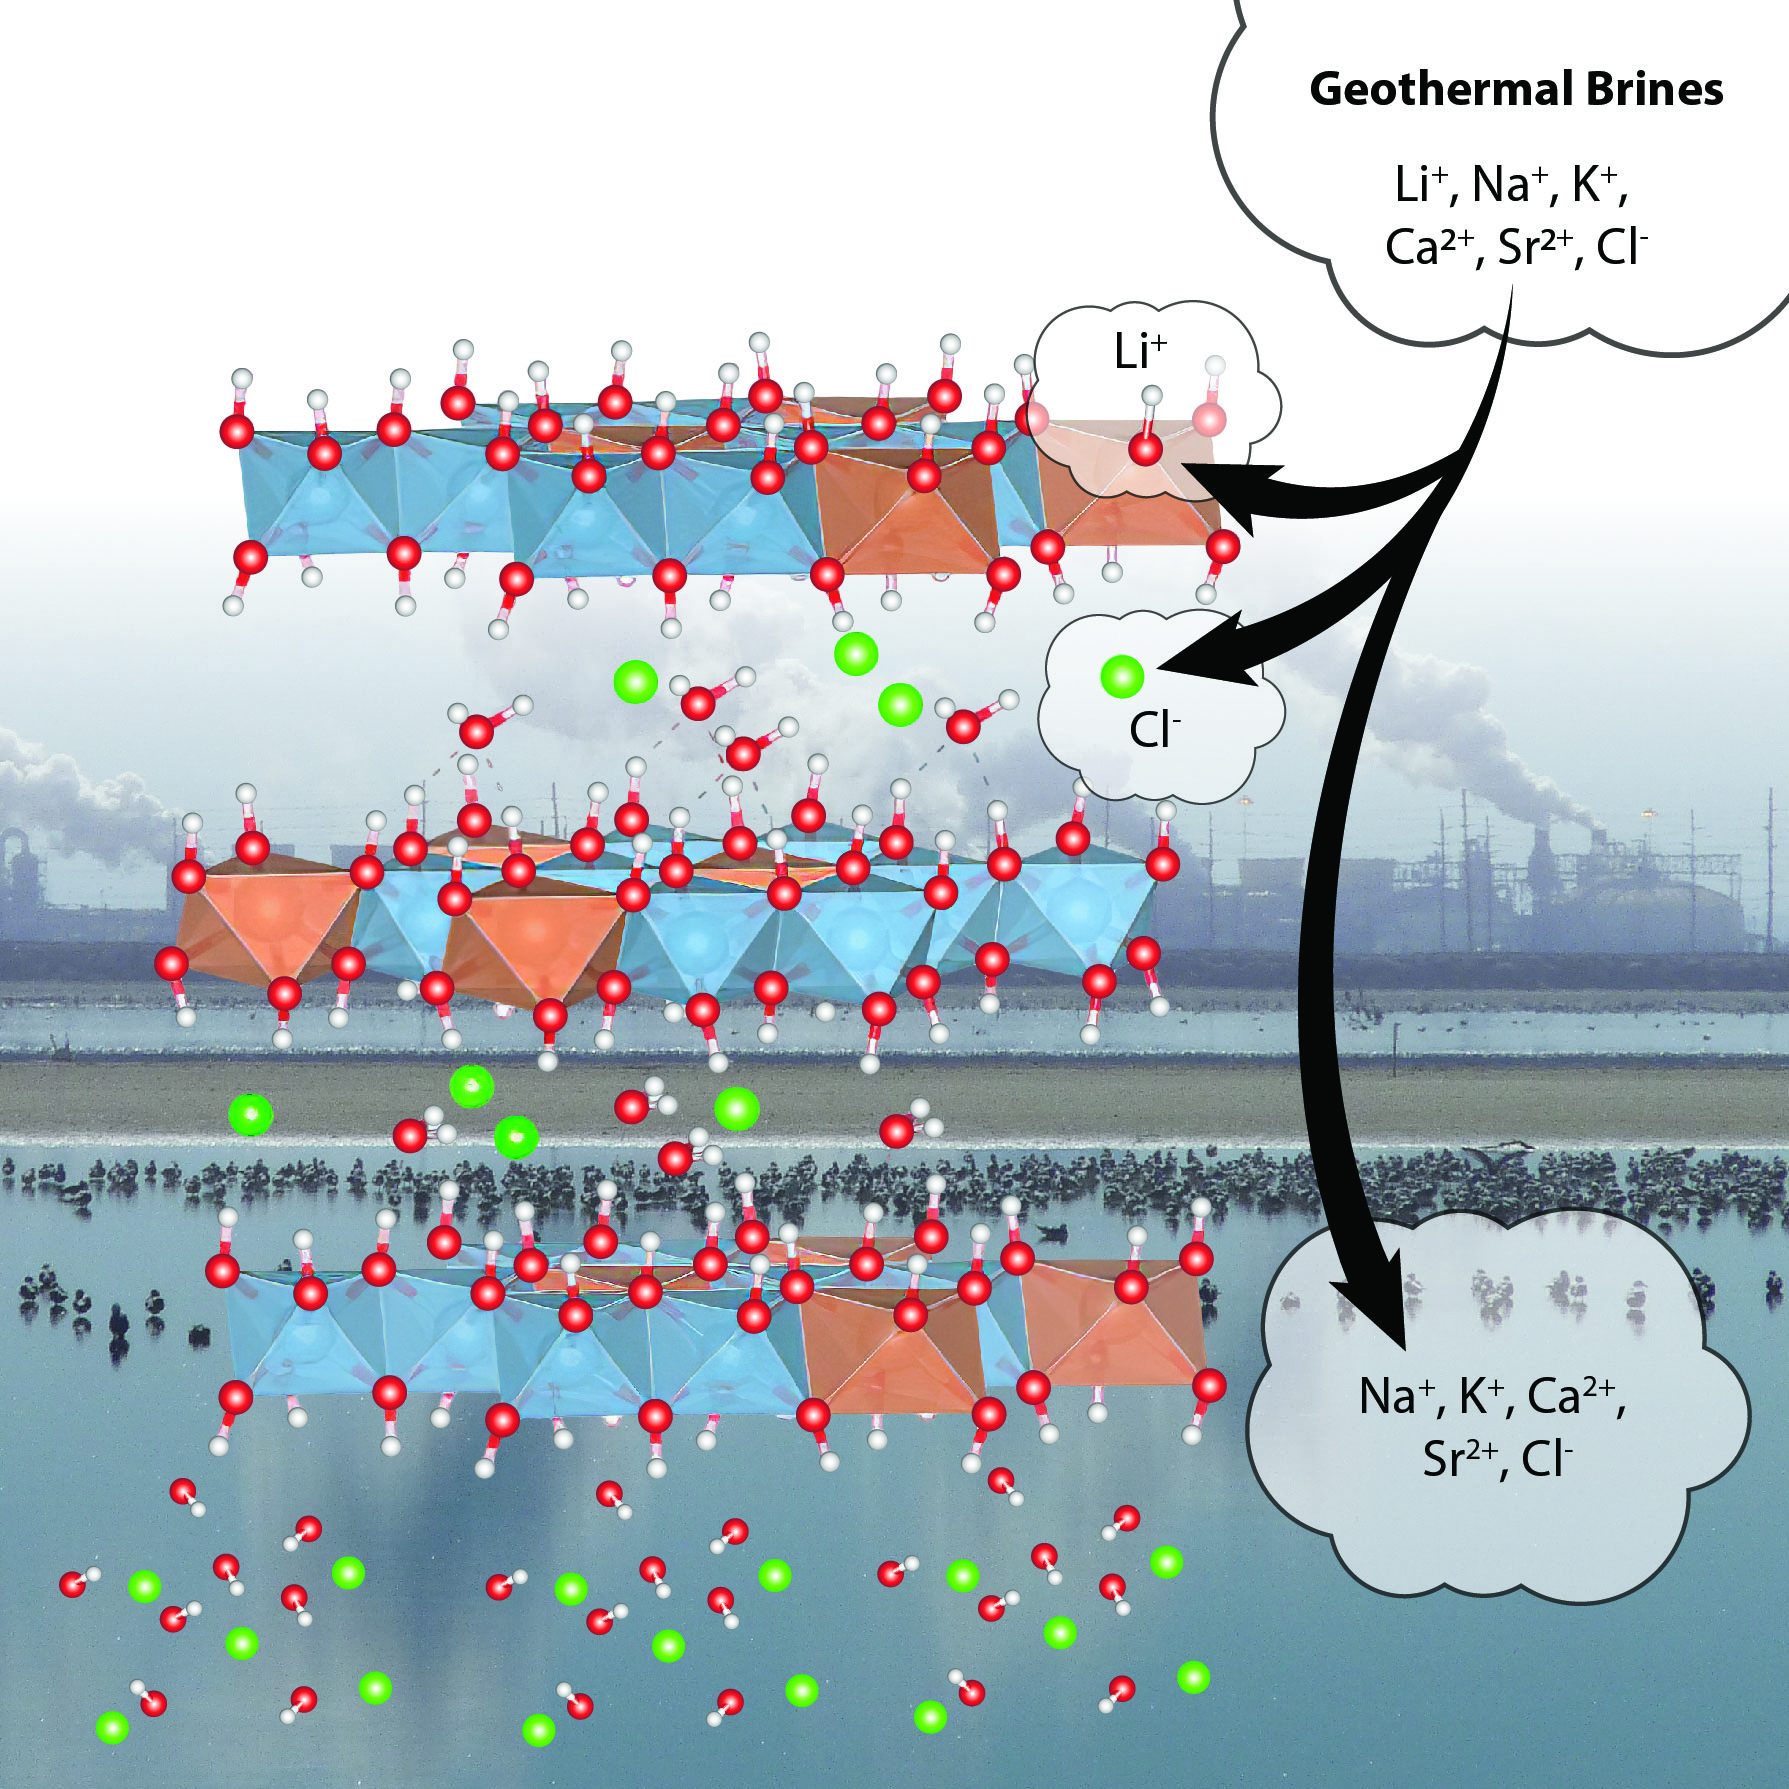 ORNL develops sorbent to recover lithium from geothermal brines - technology